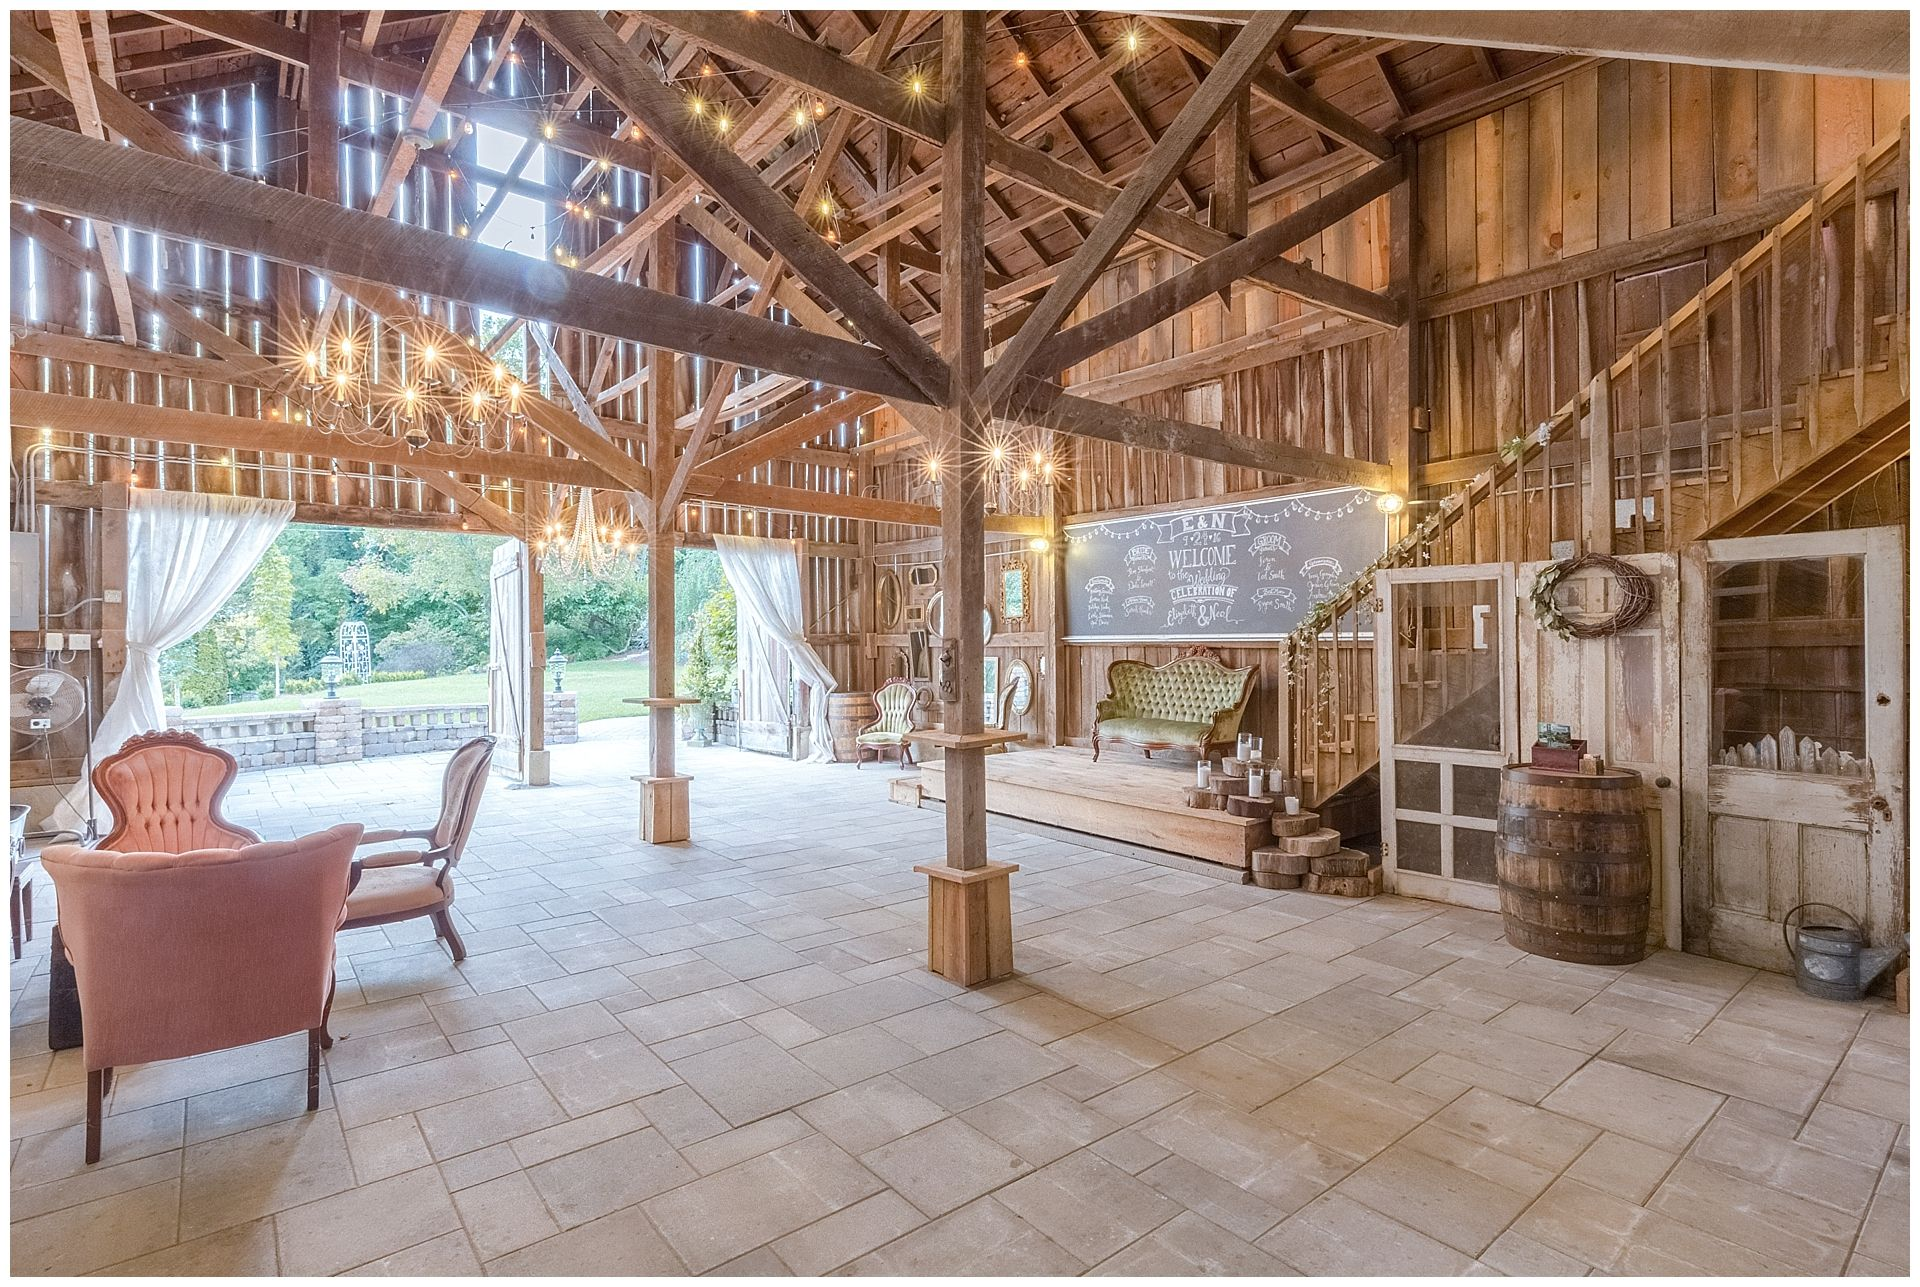 The Barn At Springhouse Gardens Is A Rustic Wedding Venue Located In Nicholasville Ky